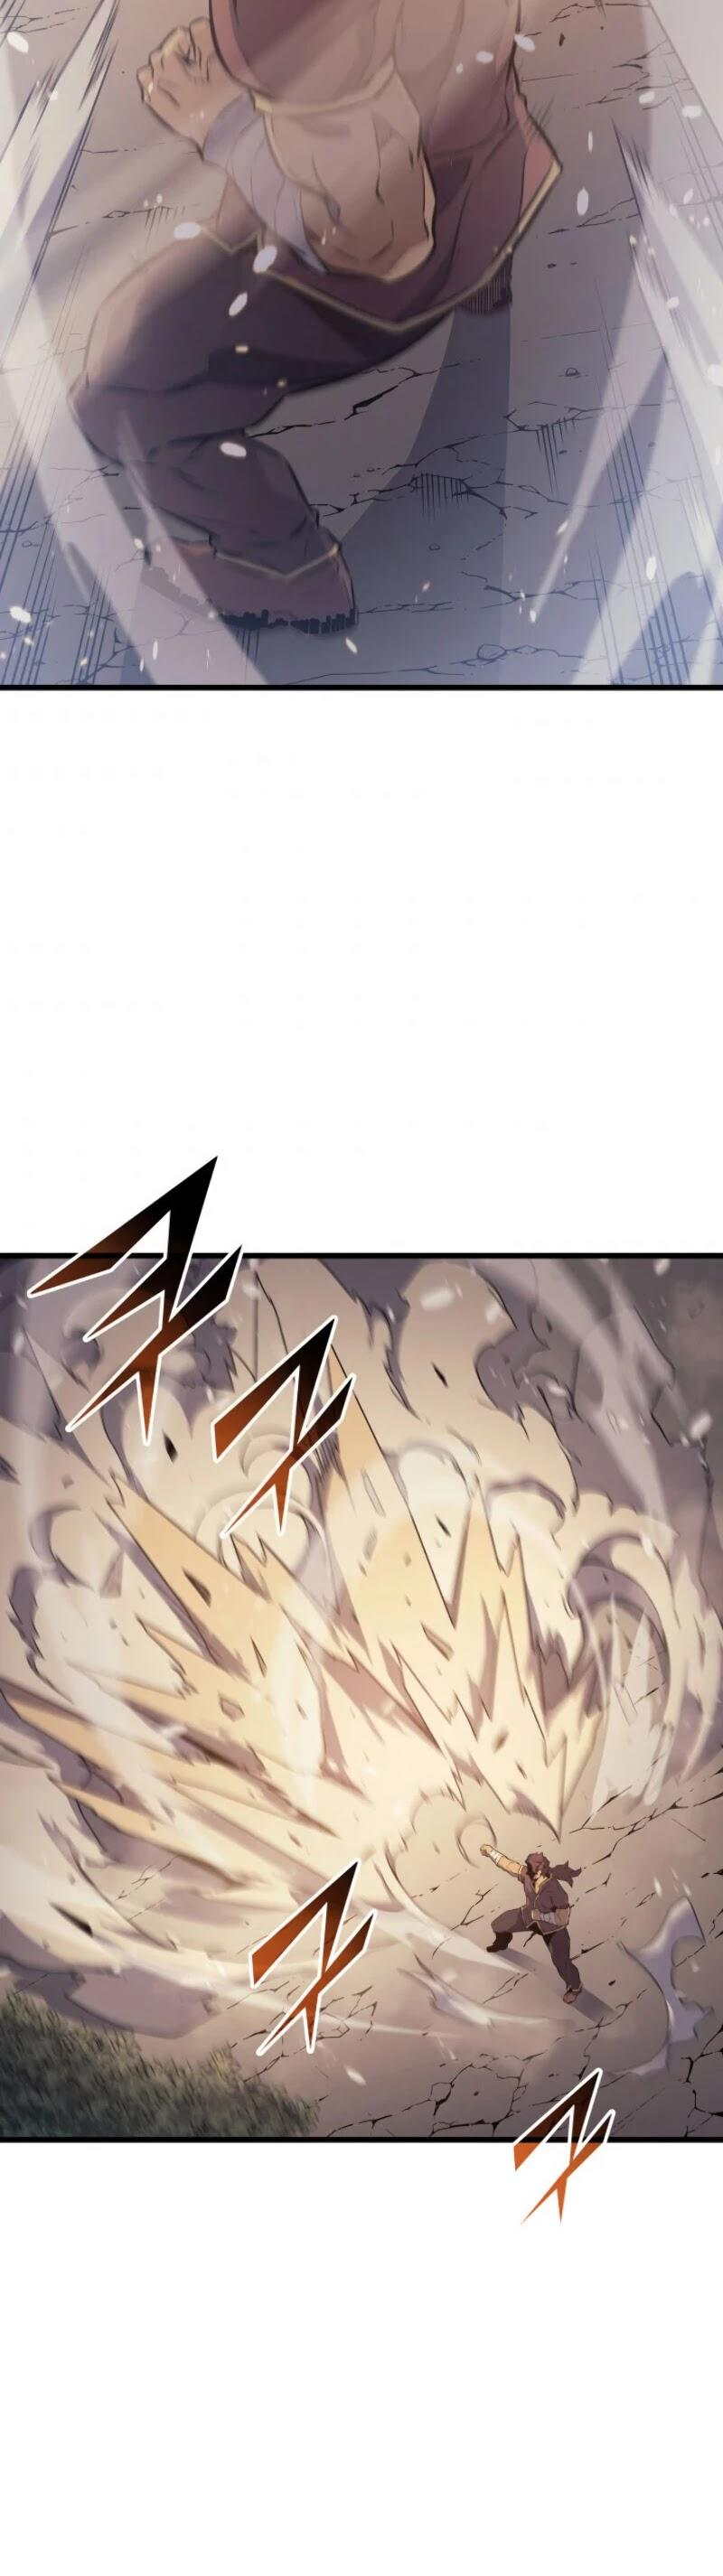 The Great Mage Returns After 4000 Years Chapter 73 page 40 - Mangakakalots.com